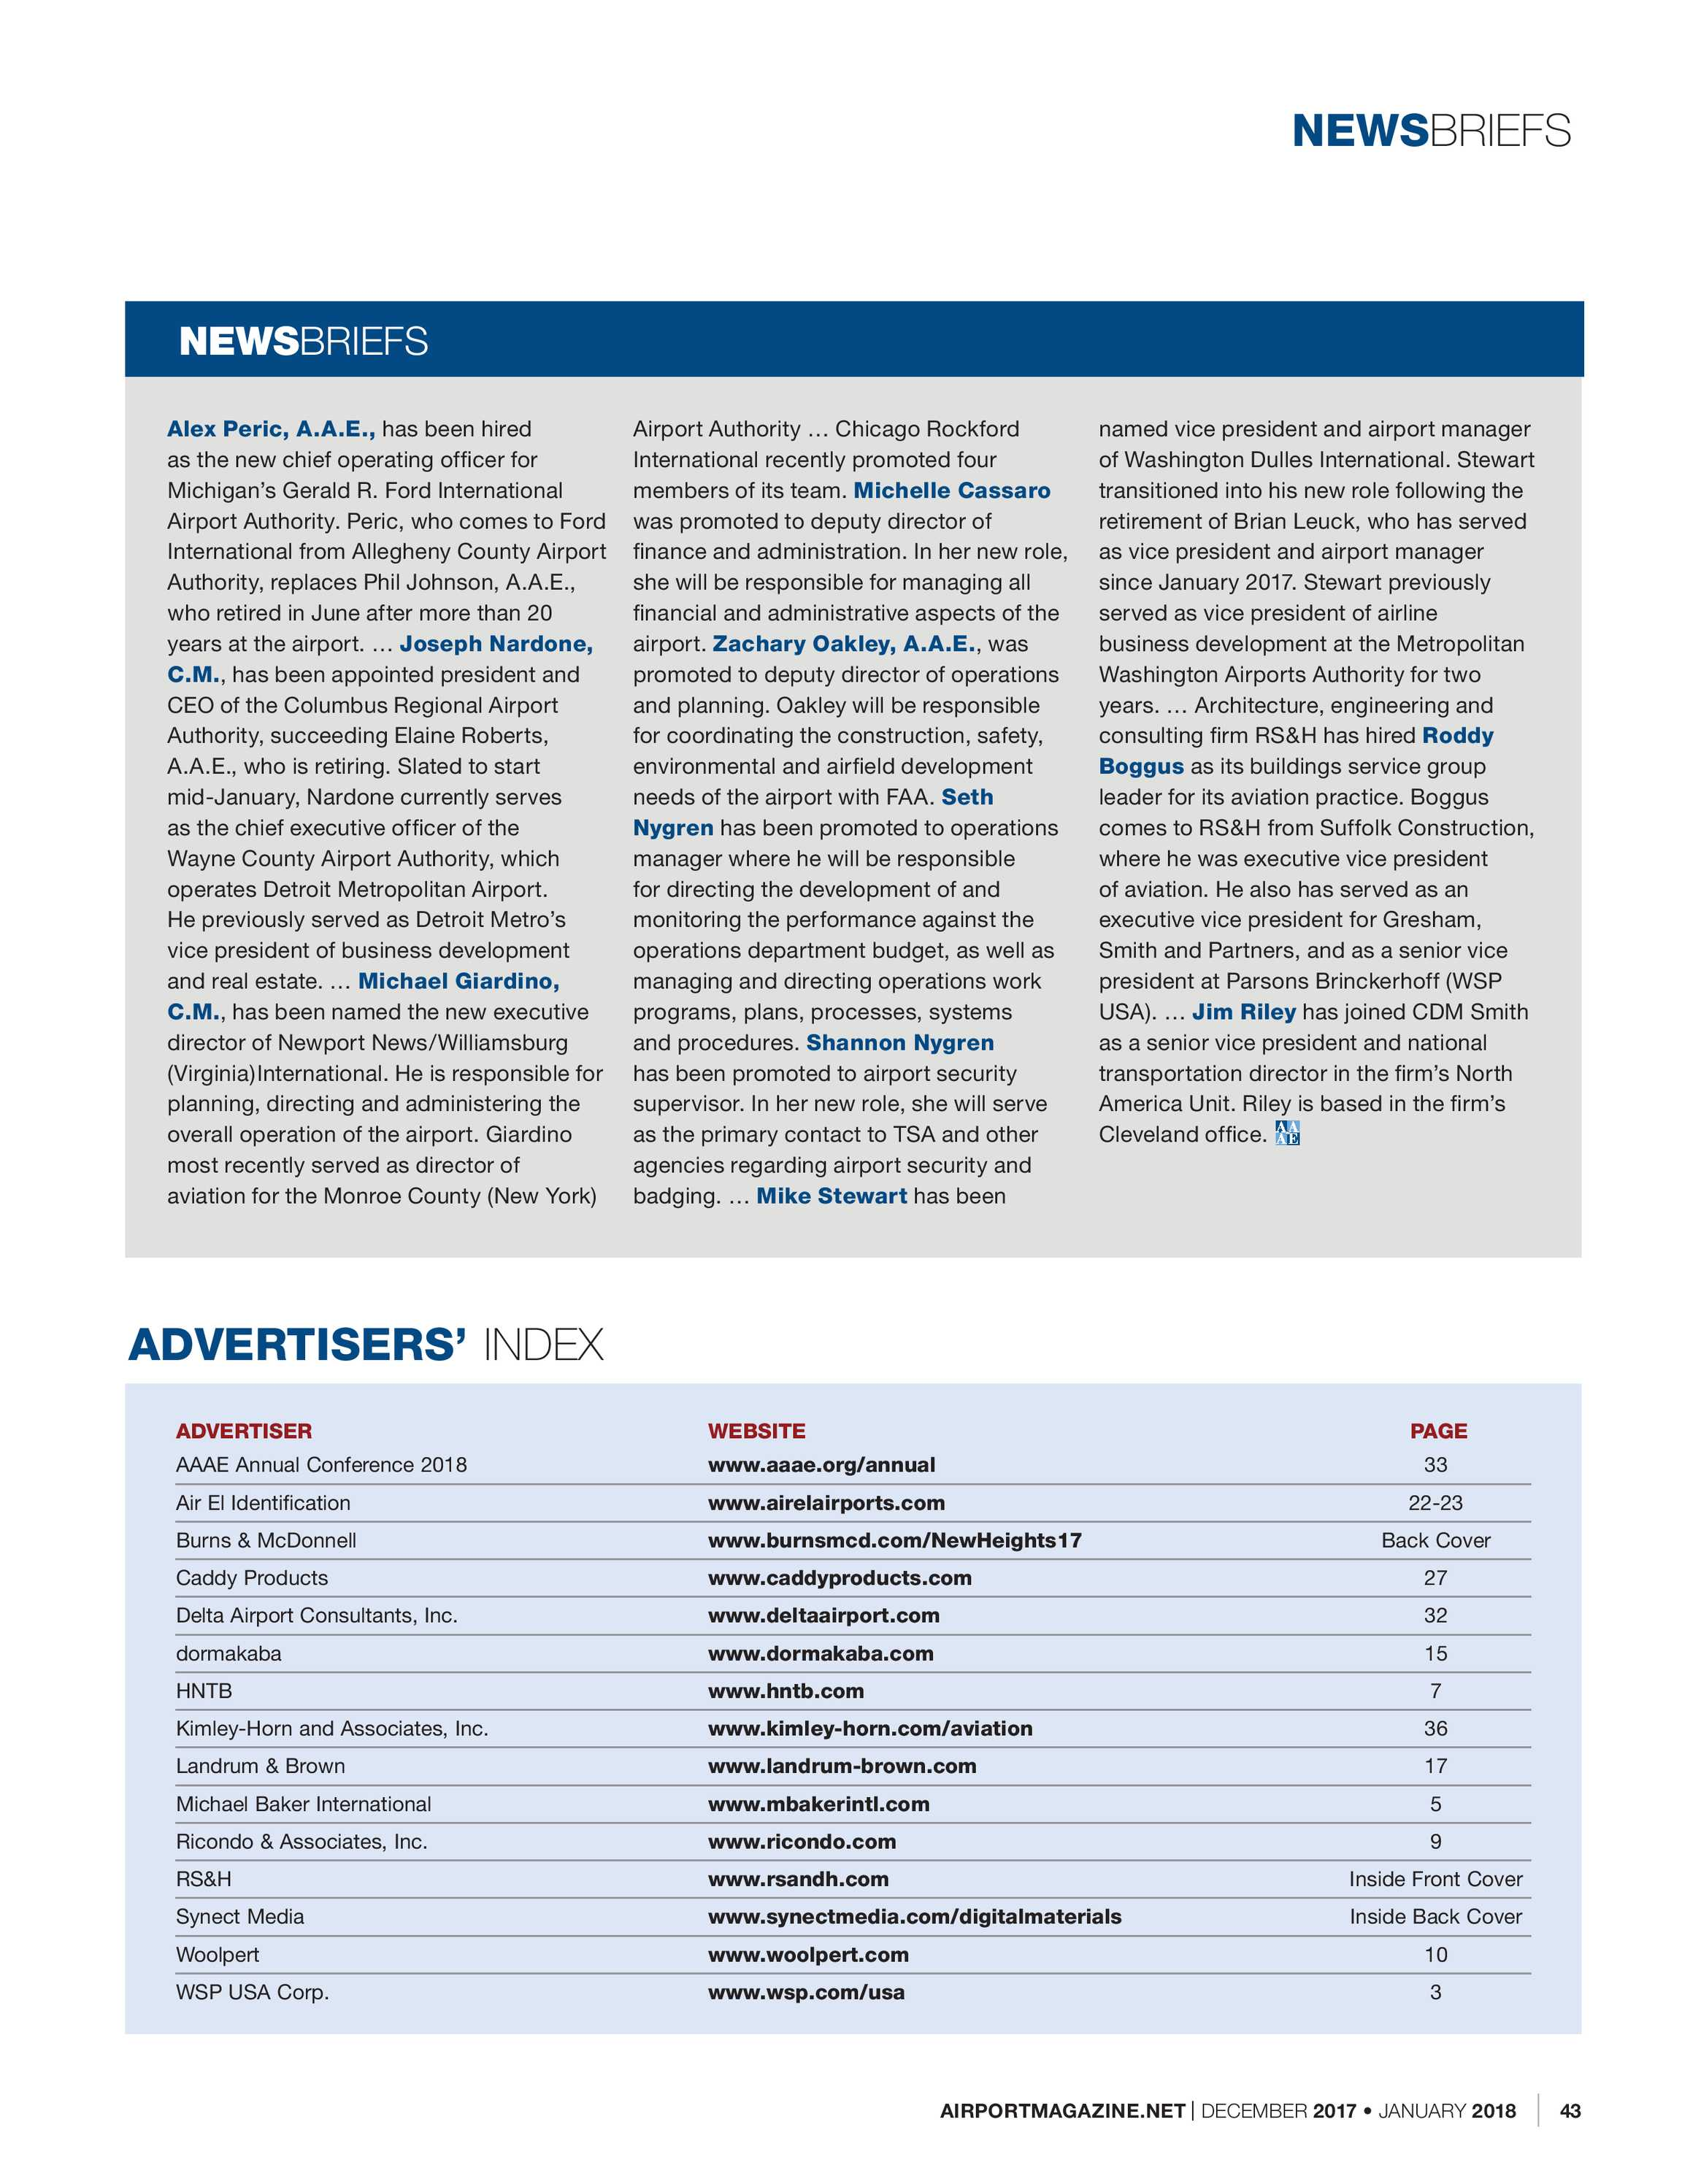 Airport Magazine - December 2017/January 2018 - page 43